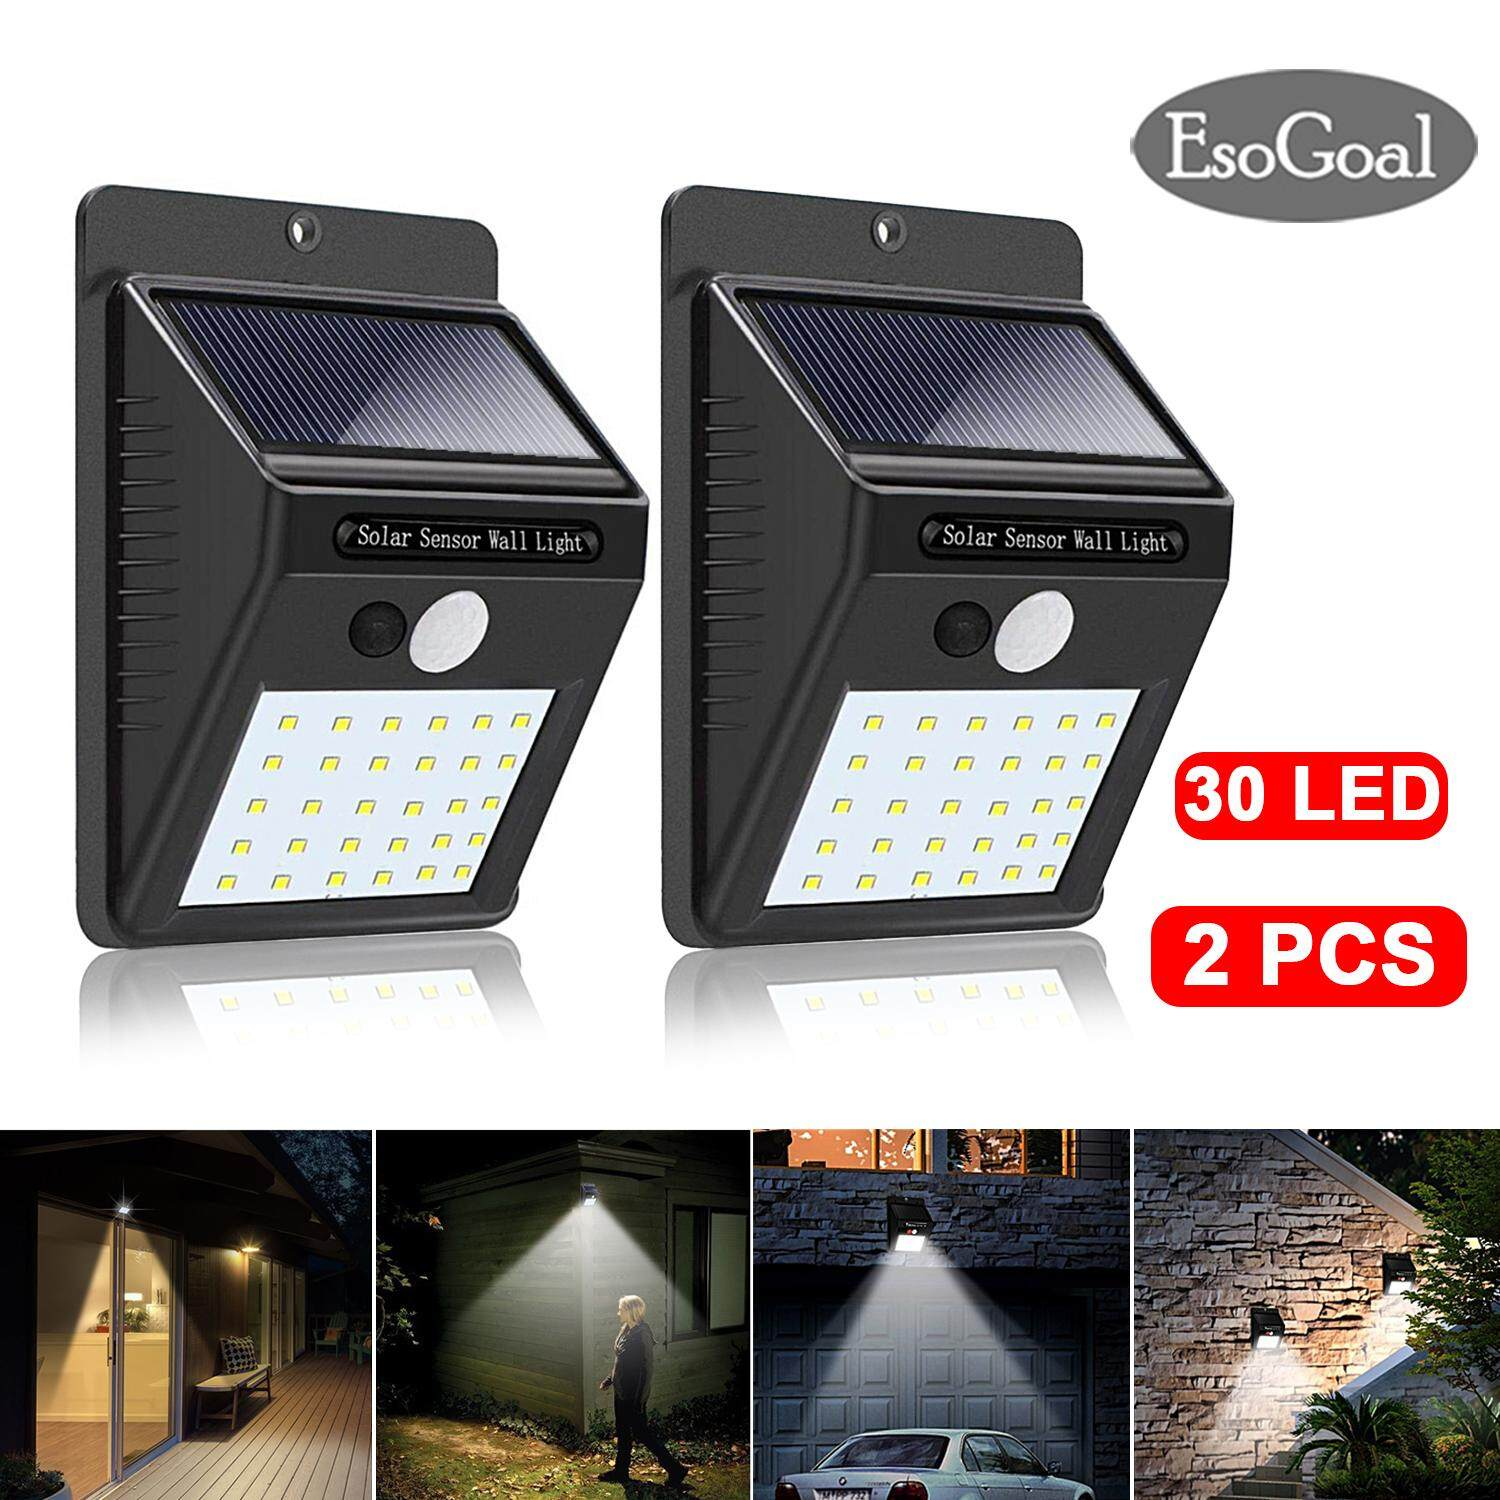 Esogoal 30 Led Solar Lights Outdoor Waterproof Powered Motion Sensor Light Wireless Security Outside